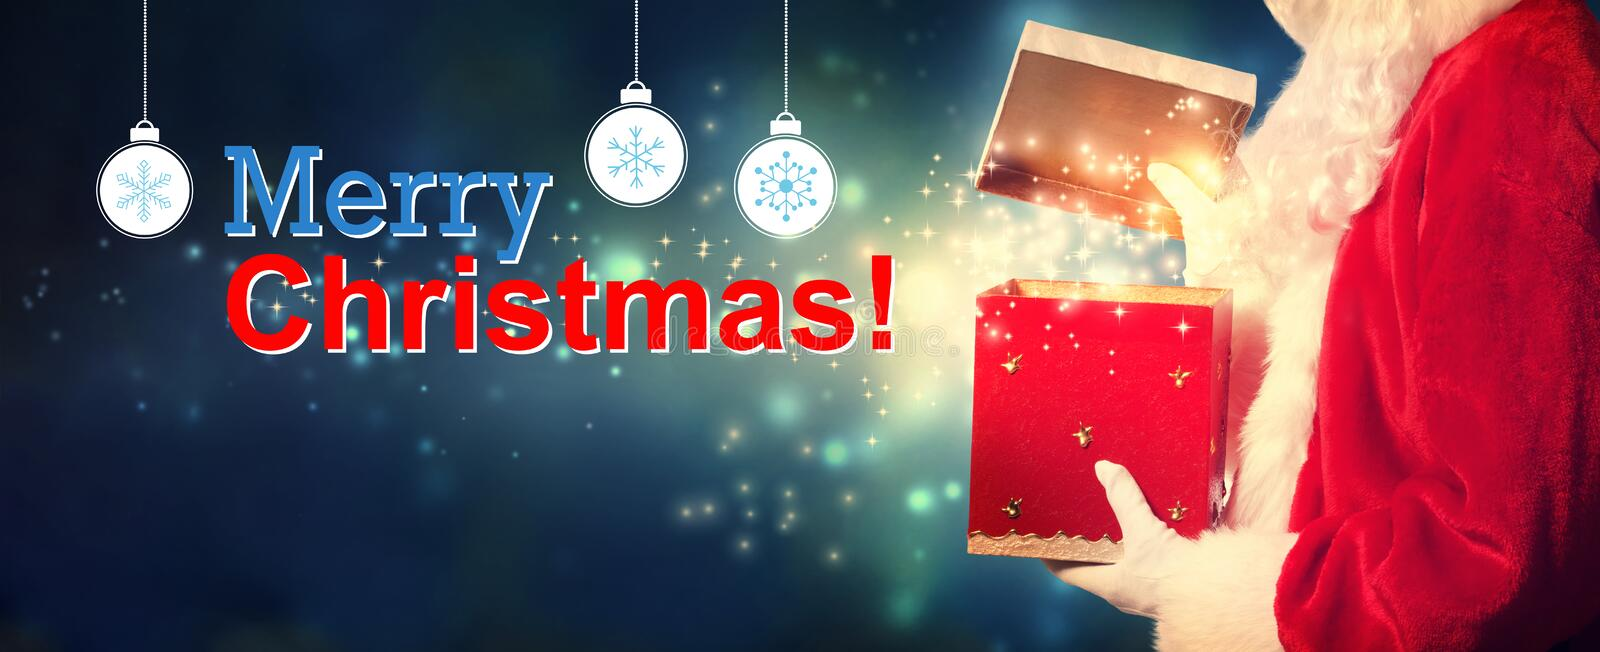 Merry Christmas message with Santa opening a gift box stock images